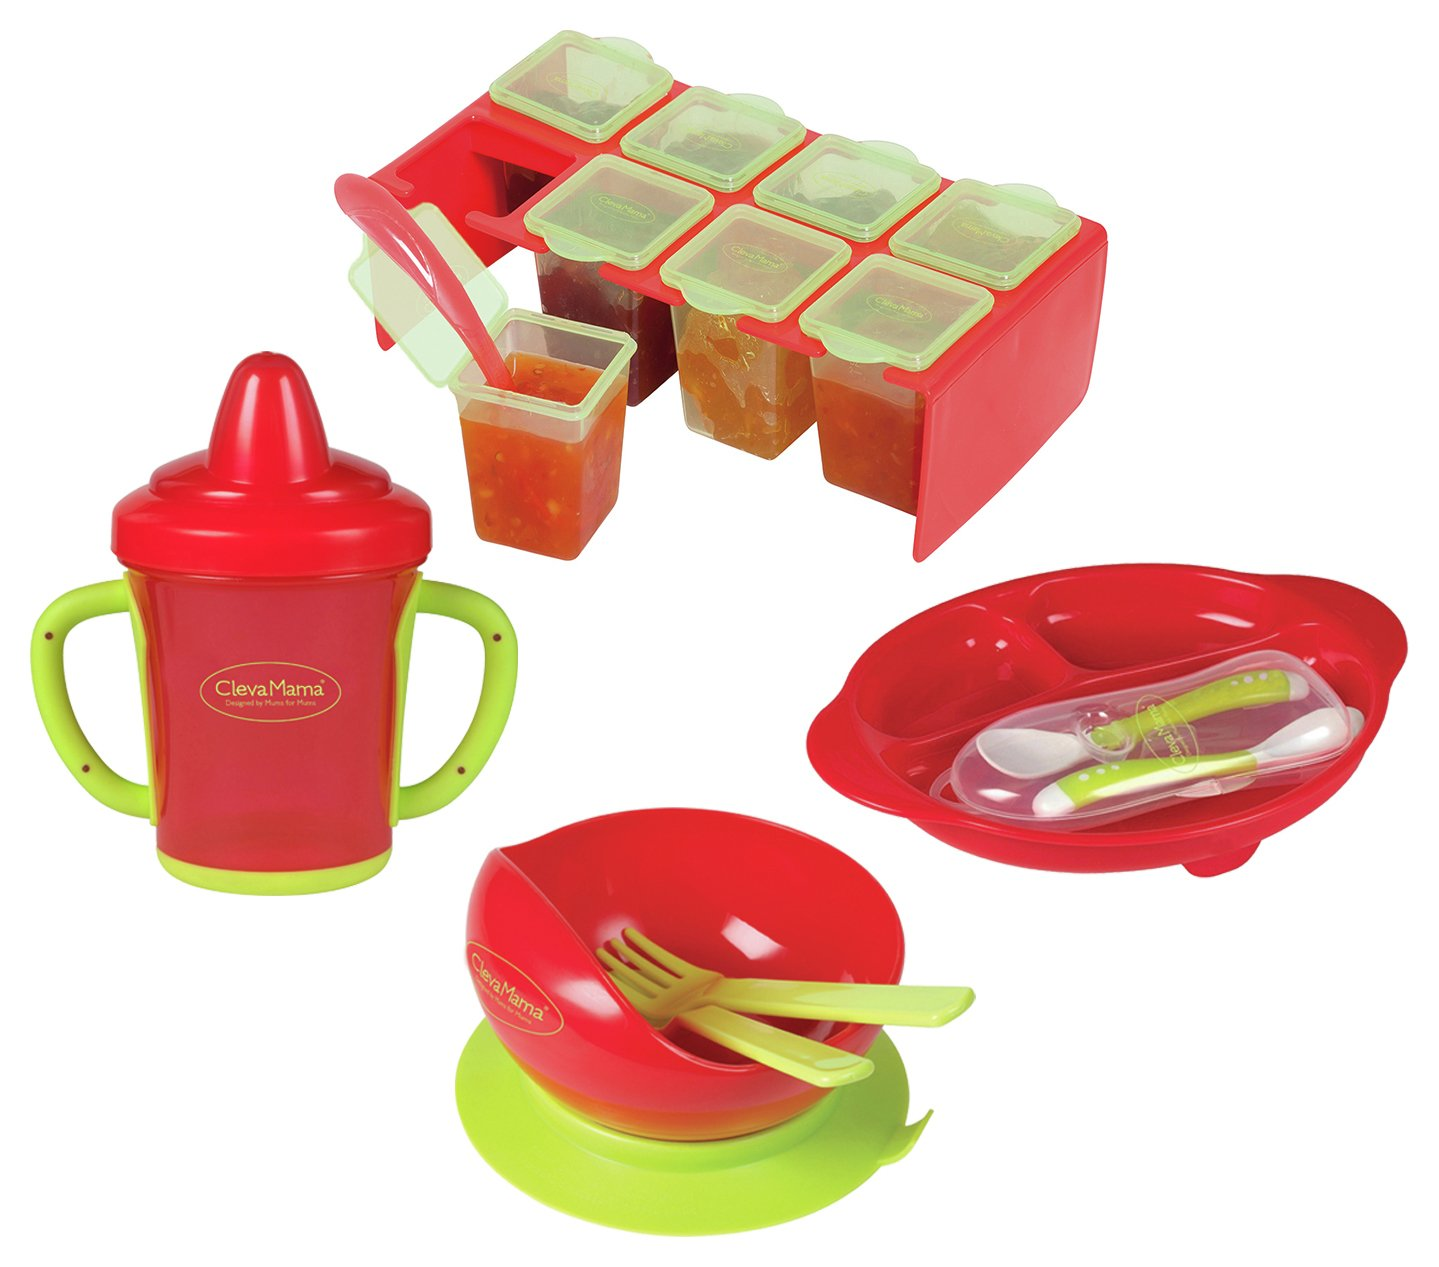 Image of Clevamama Feeding Essentials Set.